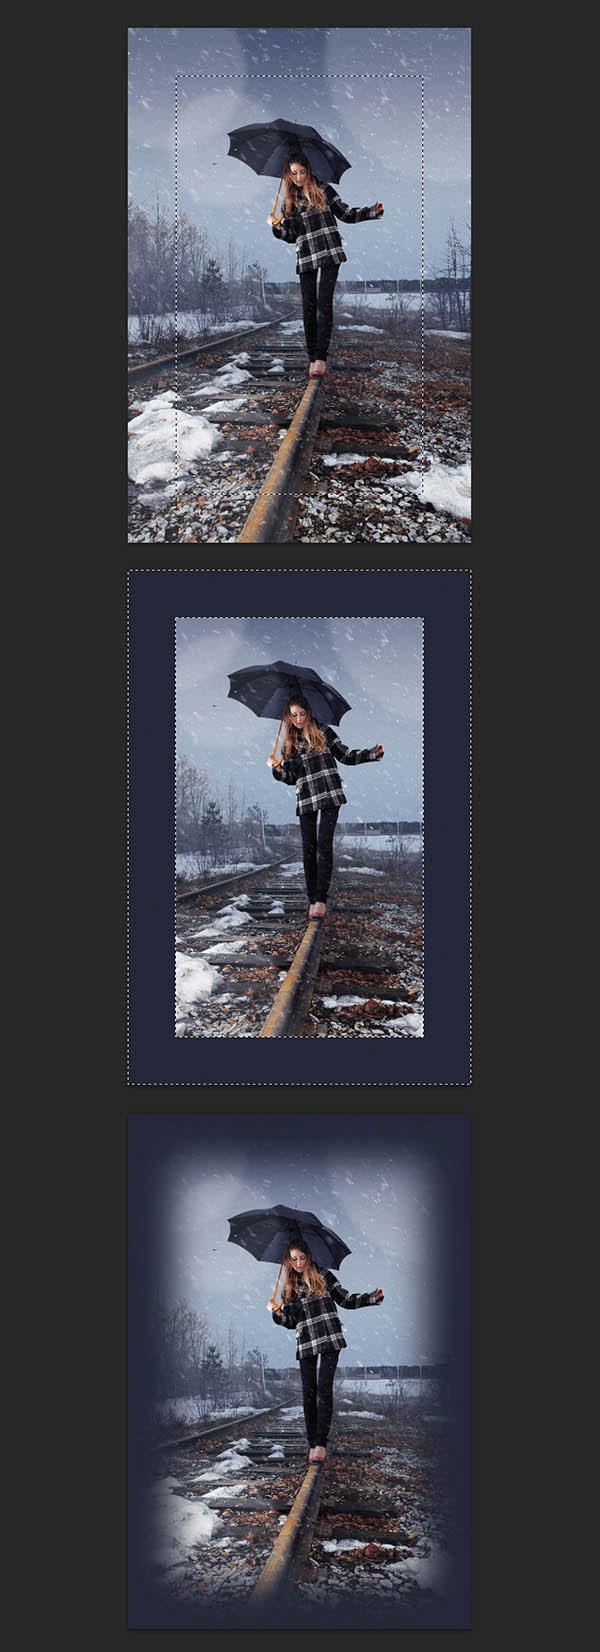 How to Add Realistic Falling Snow to a Photo in Photoshop